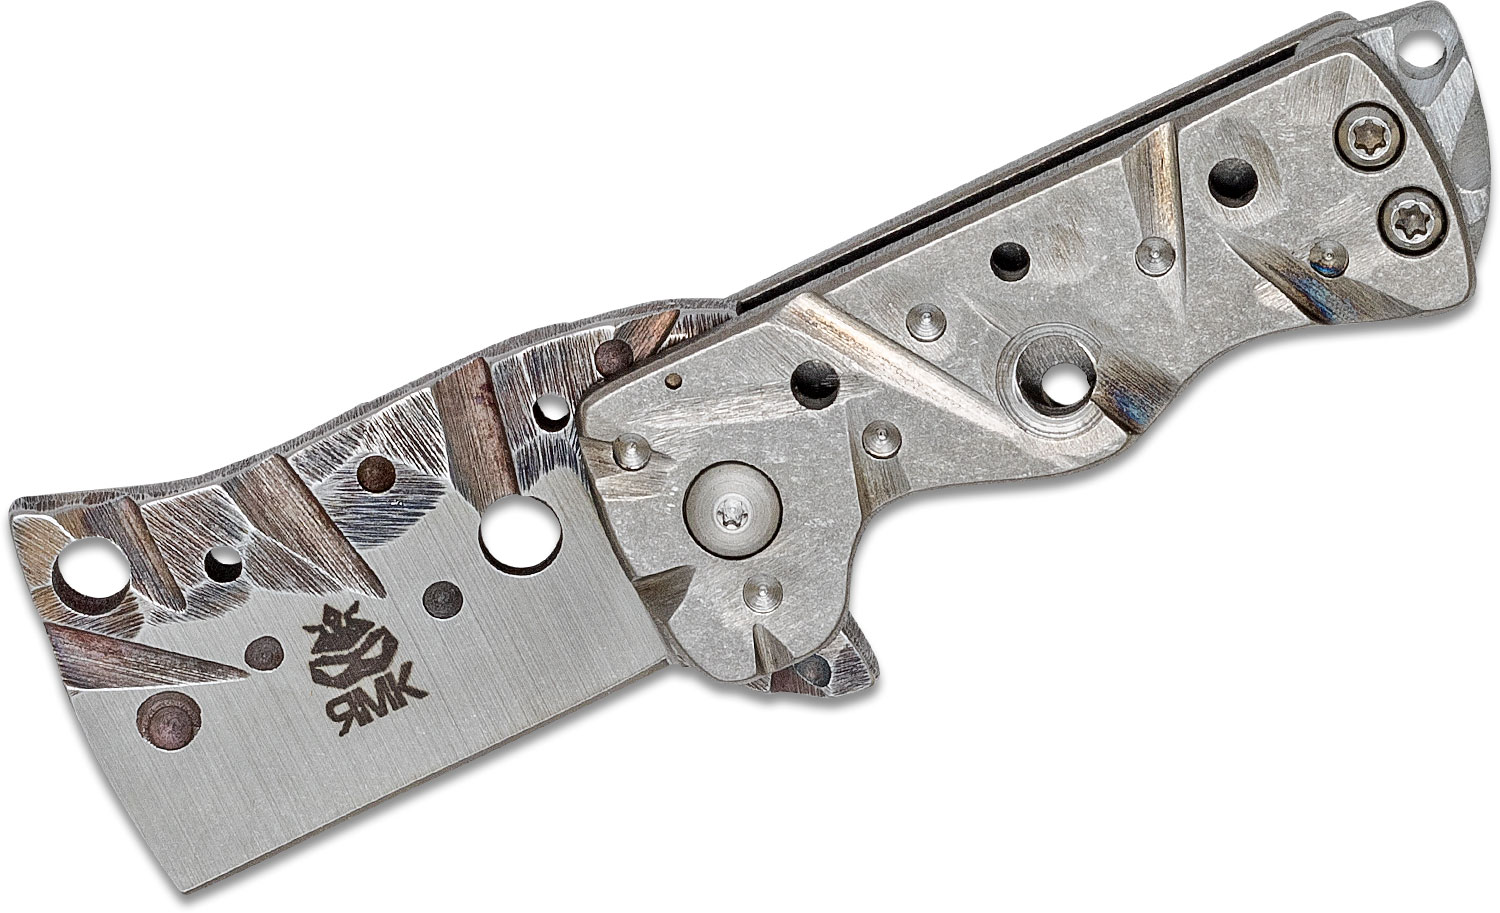 RichMade Knives Custom Baby Zombie Killer Flipper 1.75 inch D2  inchZombie inch Cleaver Blade and Titanium Handles